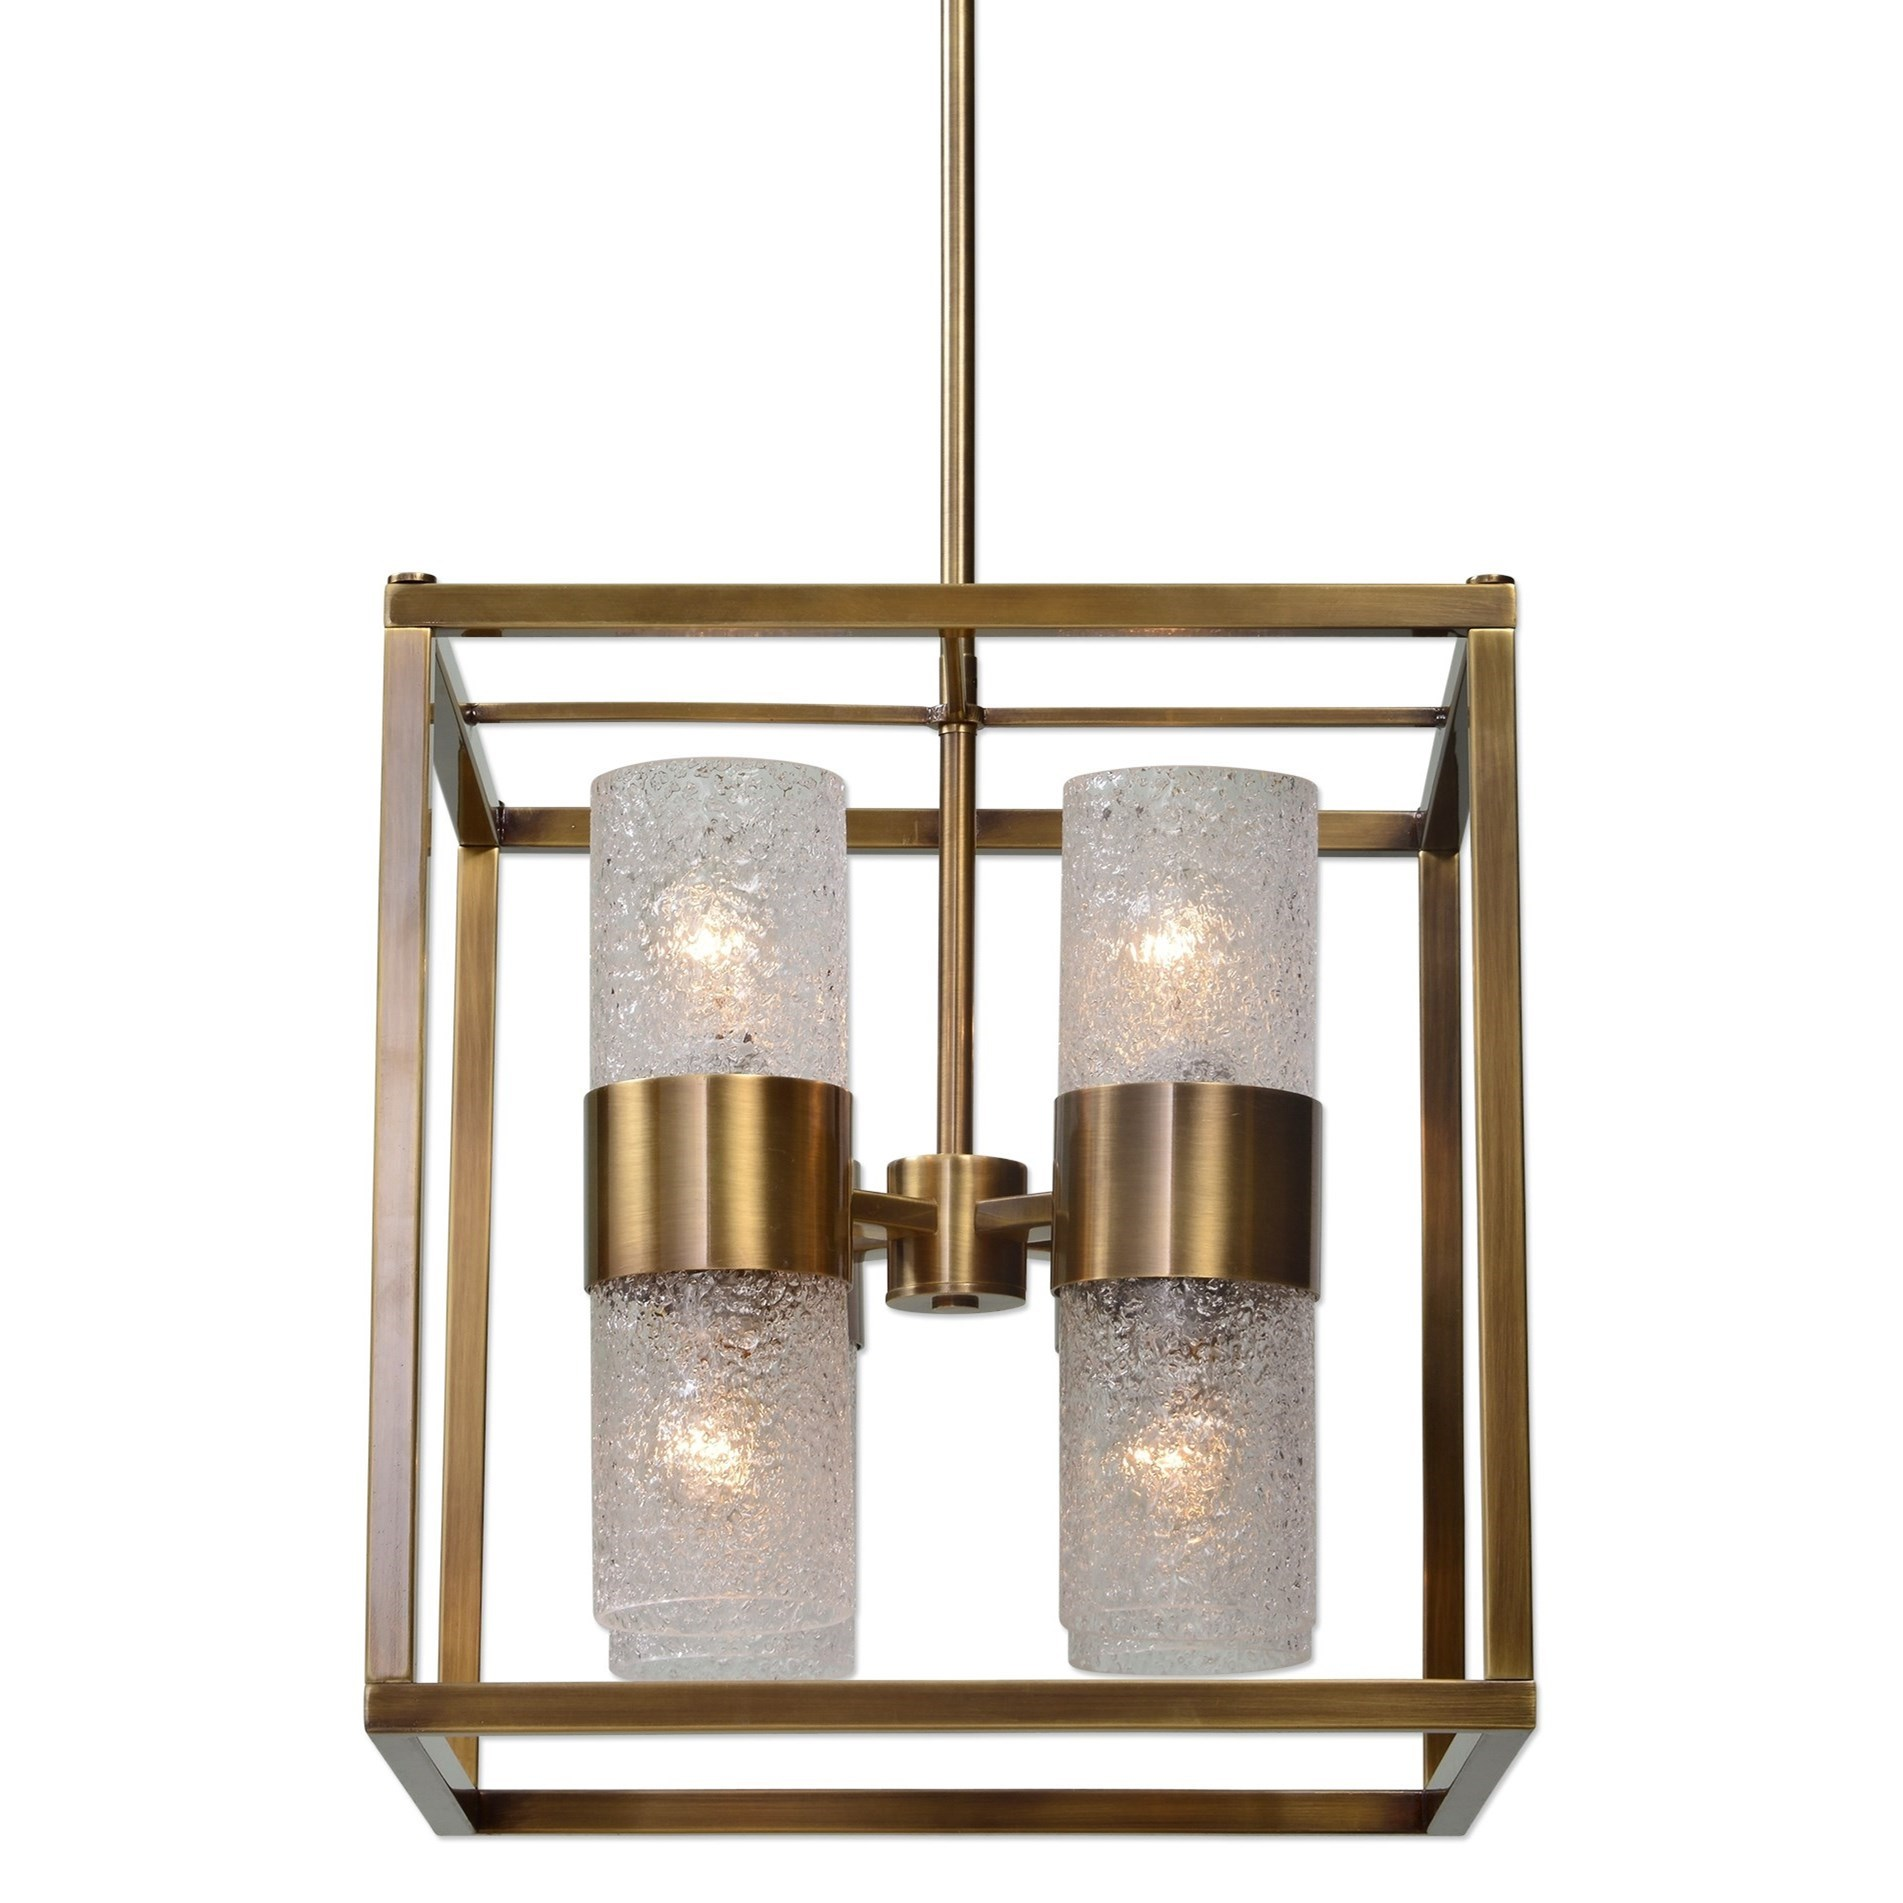 Uttermost Lighting Fixtures Marinot 8 Light Cube Pendant - Item Number: 21282